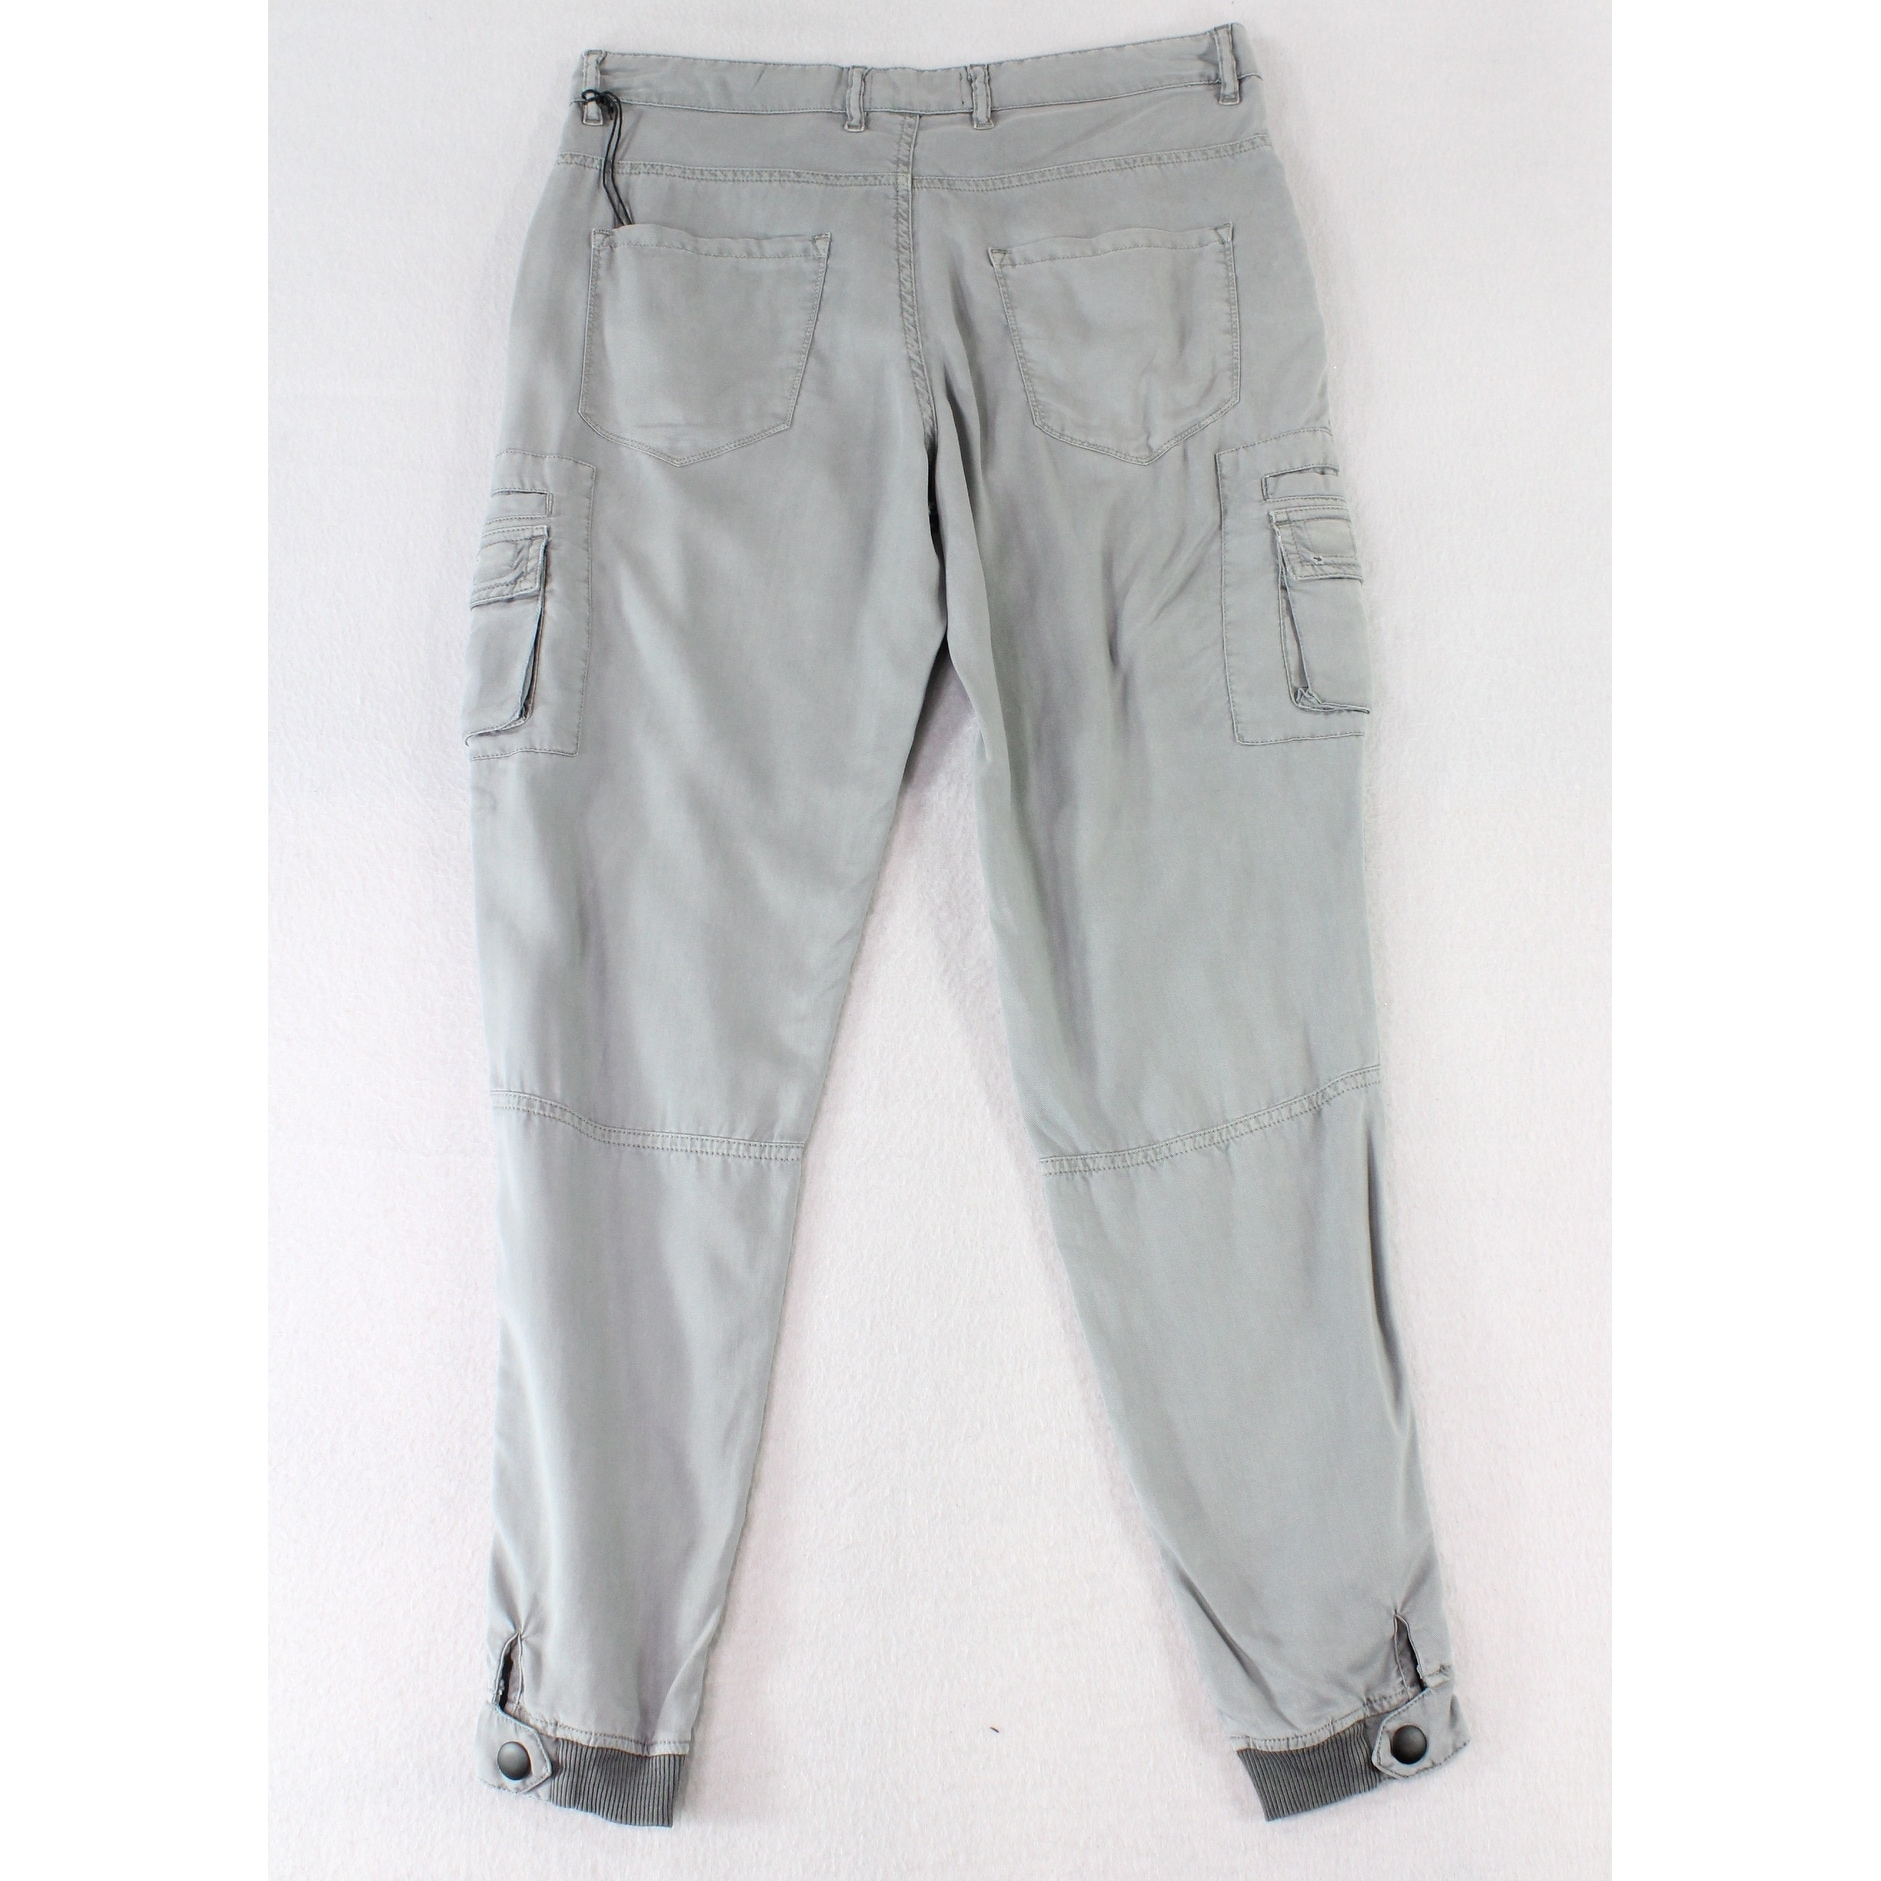 33e8ce6e00b0 Shop Black Orchid NEW Gray Women s Size Medium M Cargo Stretch Jogger Pants  - Free Shipping On Orders Over  45 - Overstock - 20746631